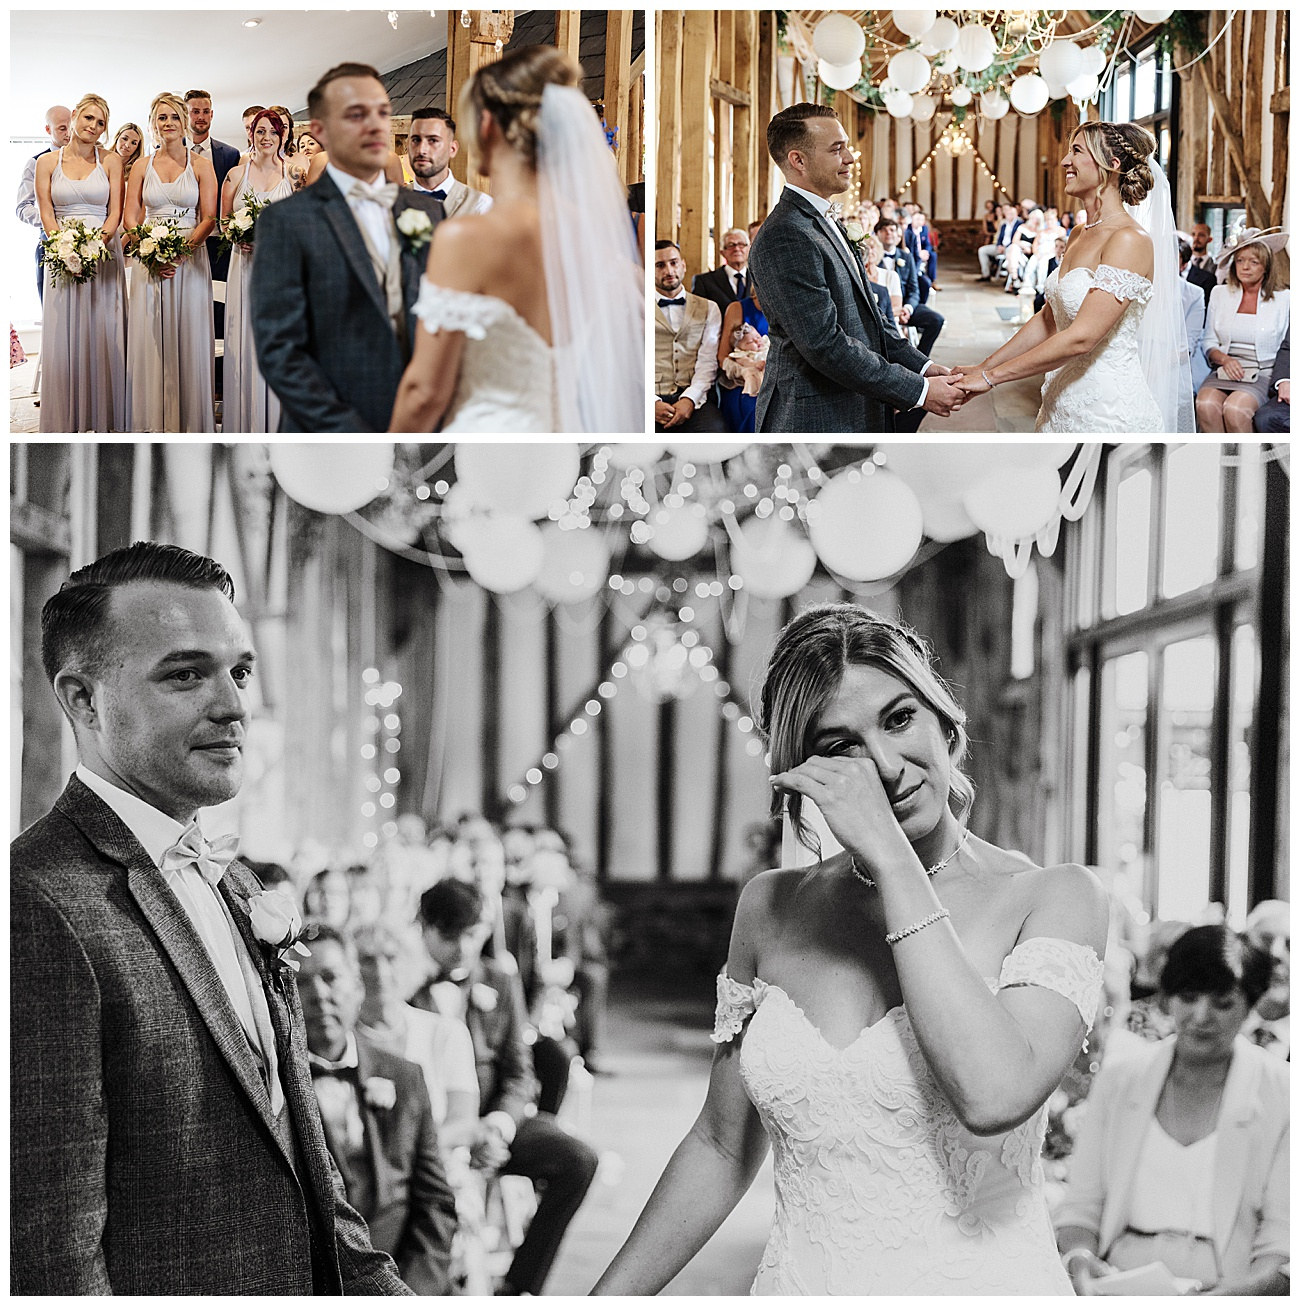 An emotional bride stands with the groom at the alter during the ceremony